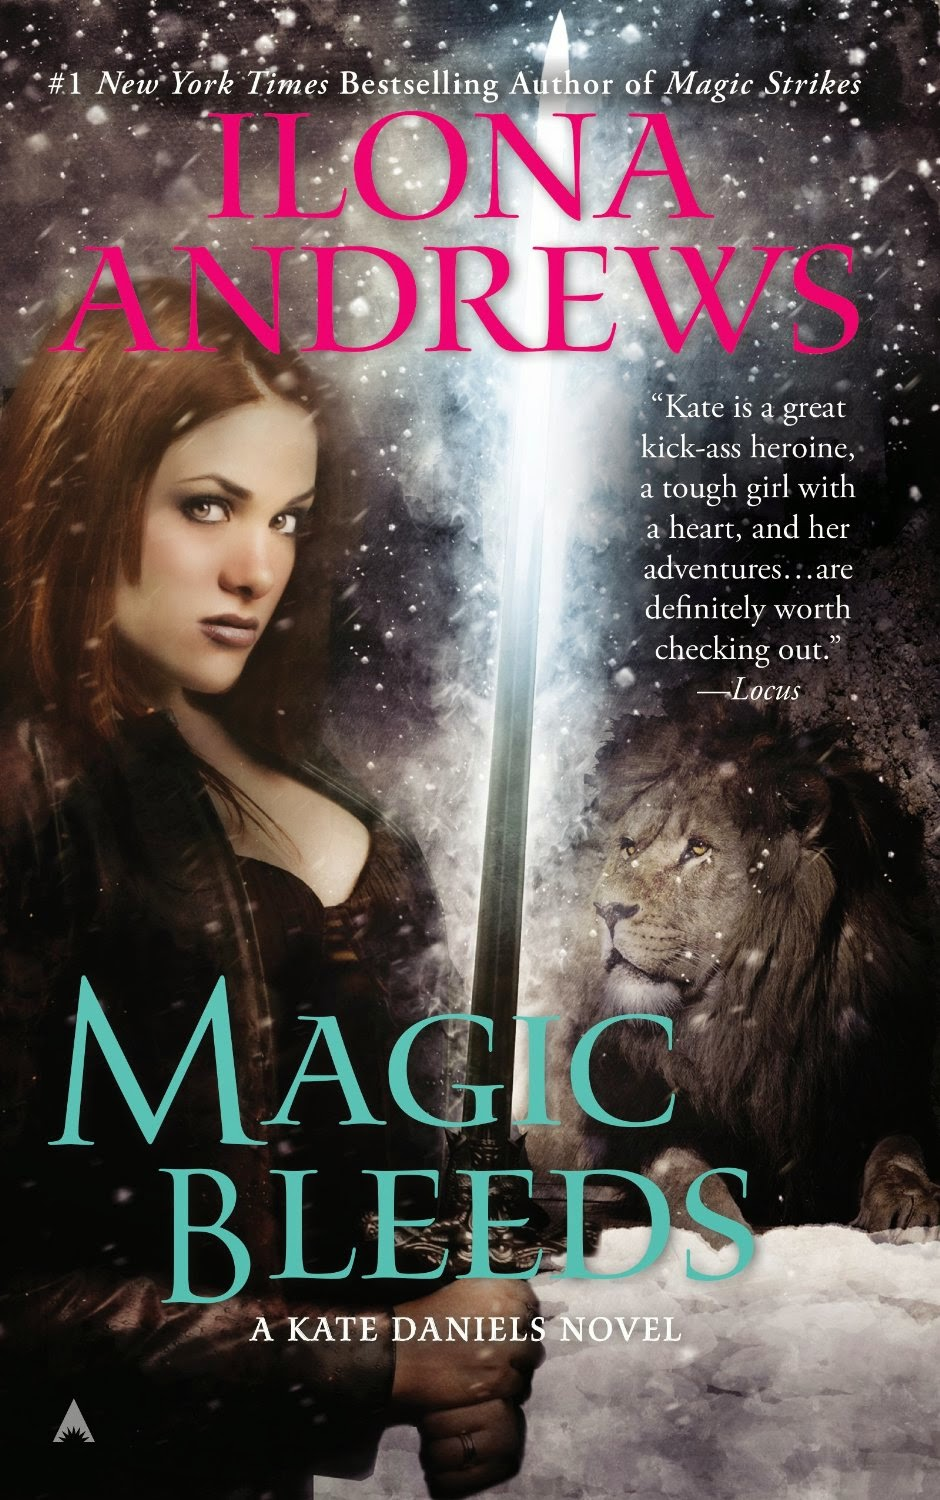 Book Review: Magic Bleeds (Kate Daniels, Book 4), by Ilona Andrews